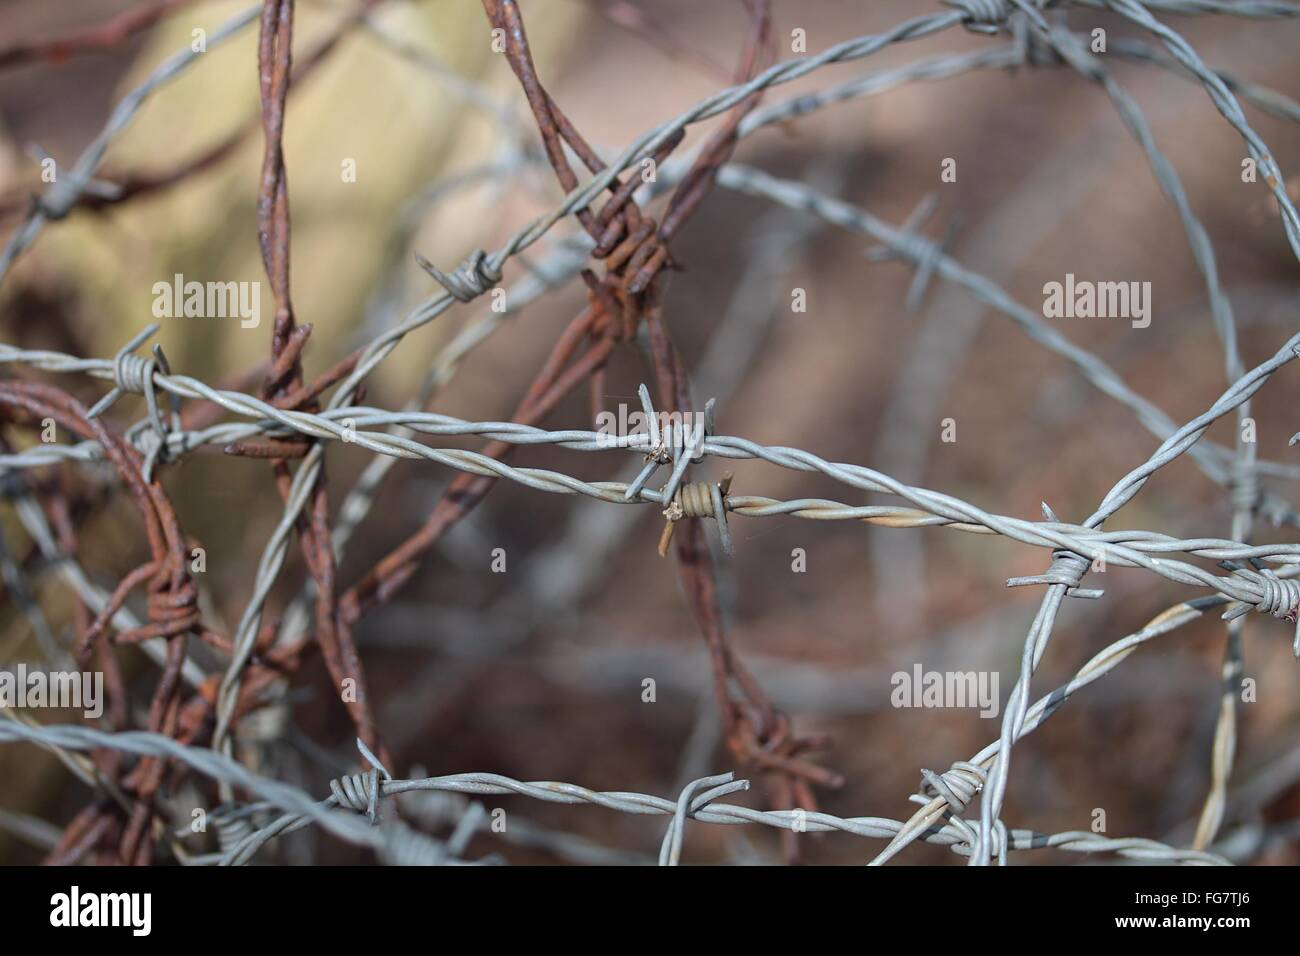 Close-Up Of Barbed Wire Fence - Stock Image